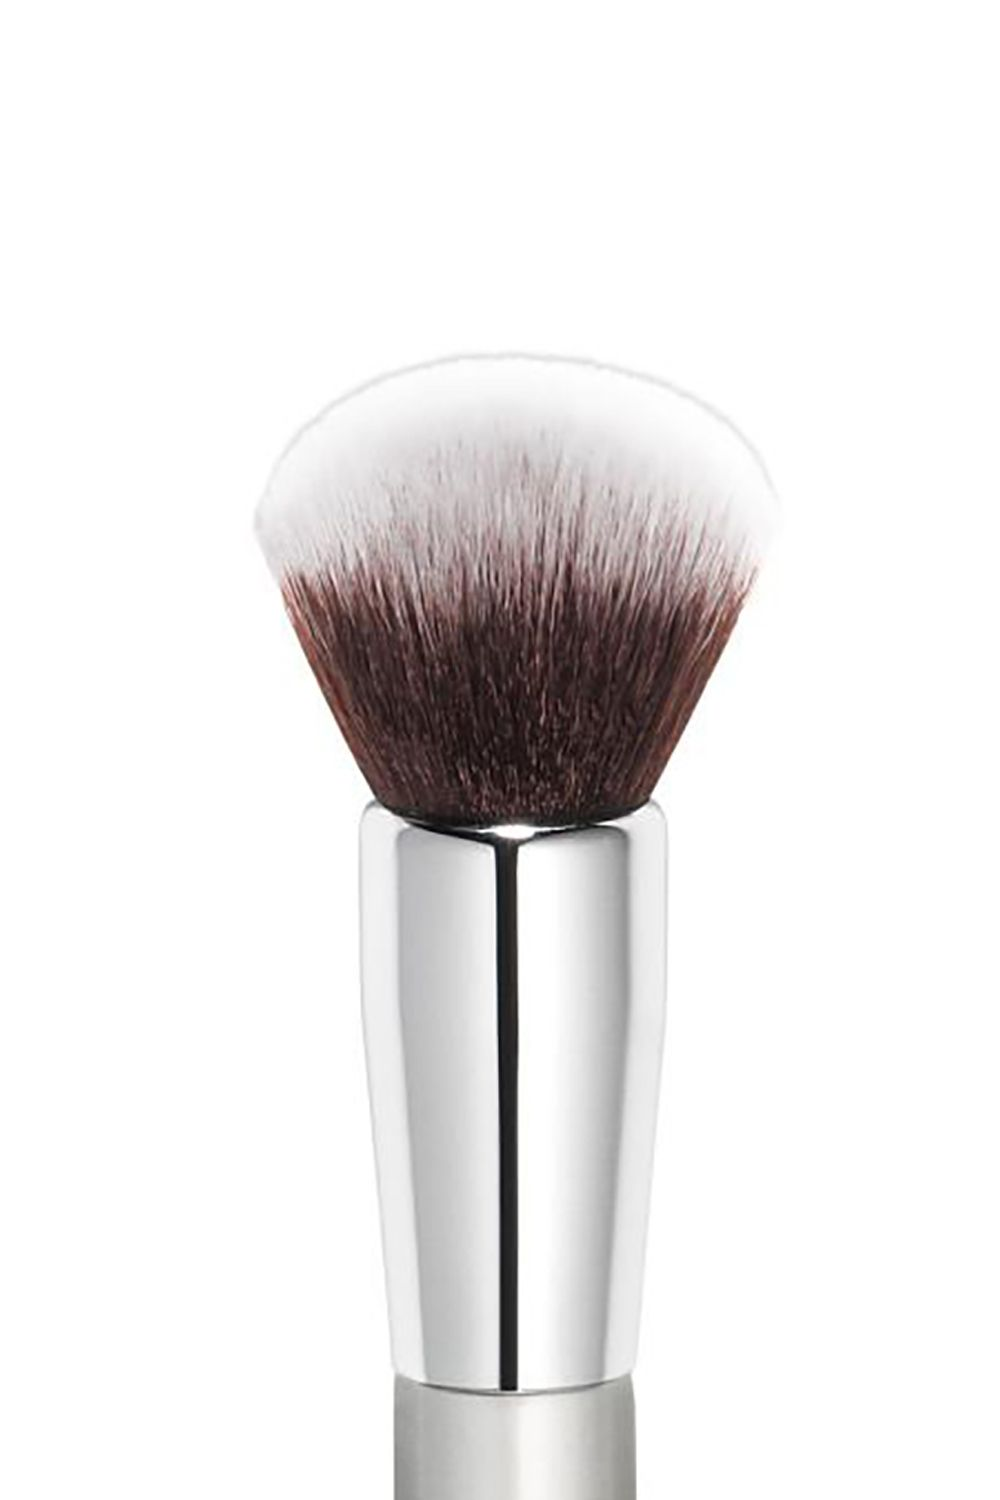 10 Best Makeup Brushes Essential Tools For Your Bag Crazy 8 Set Make Up Brush 12 Pieces